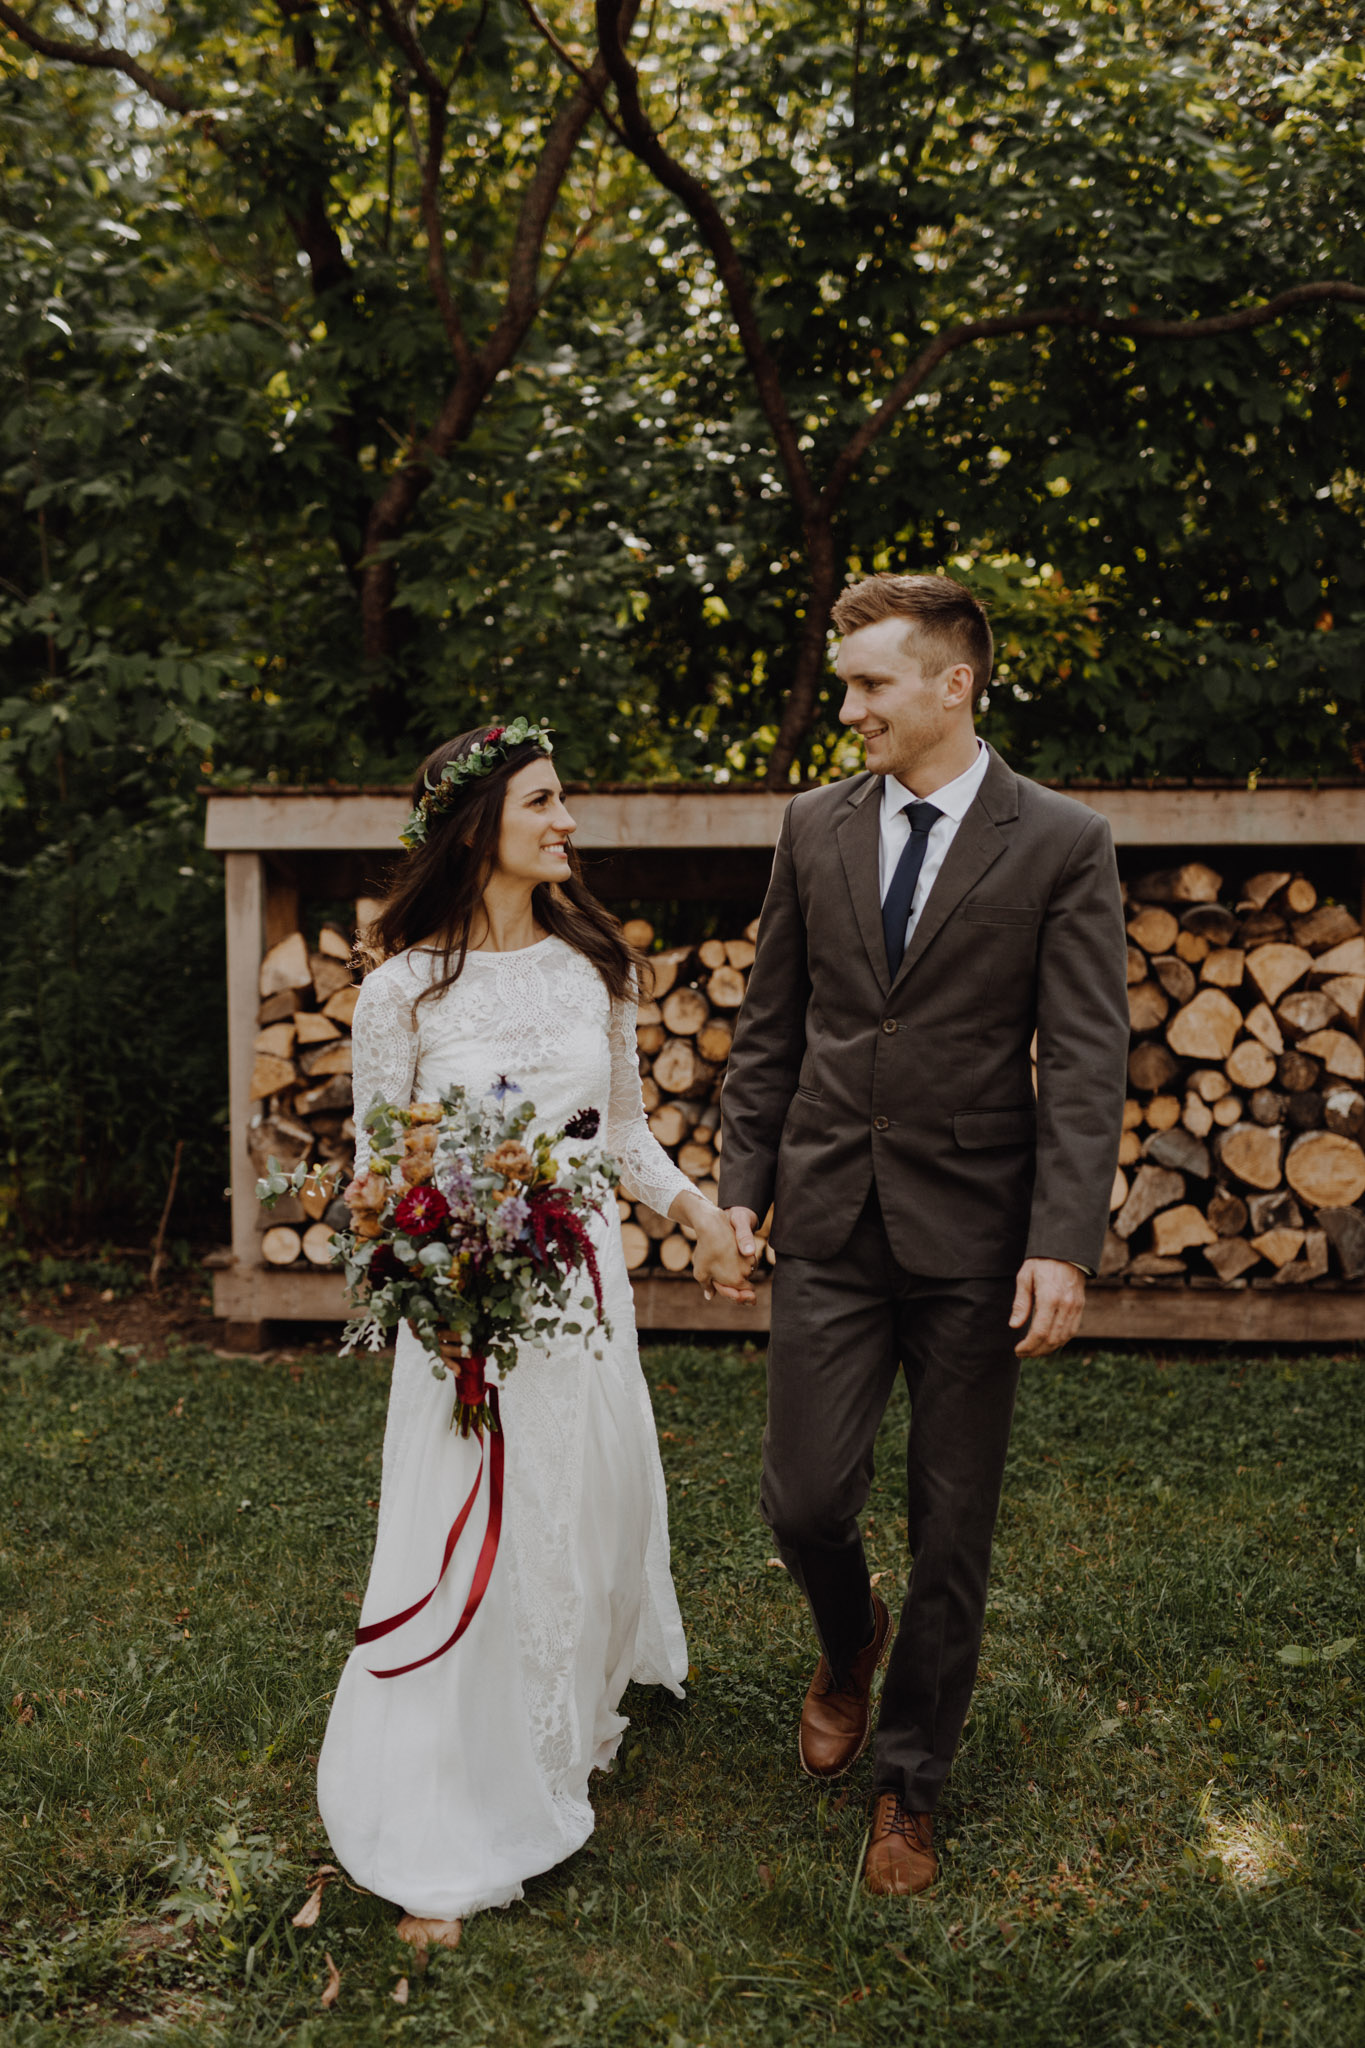 Outdoor Camp Wedding - Portraits by firewood